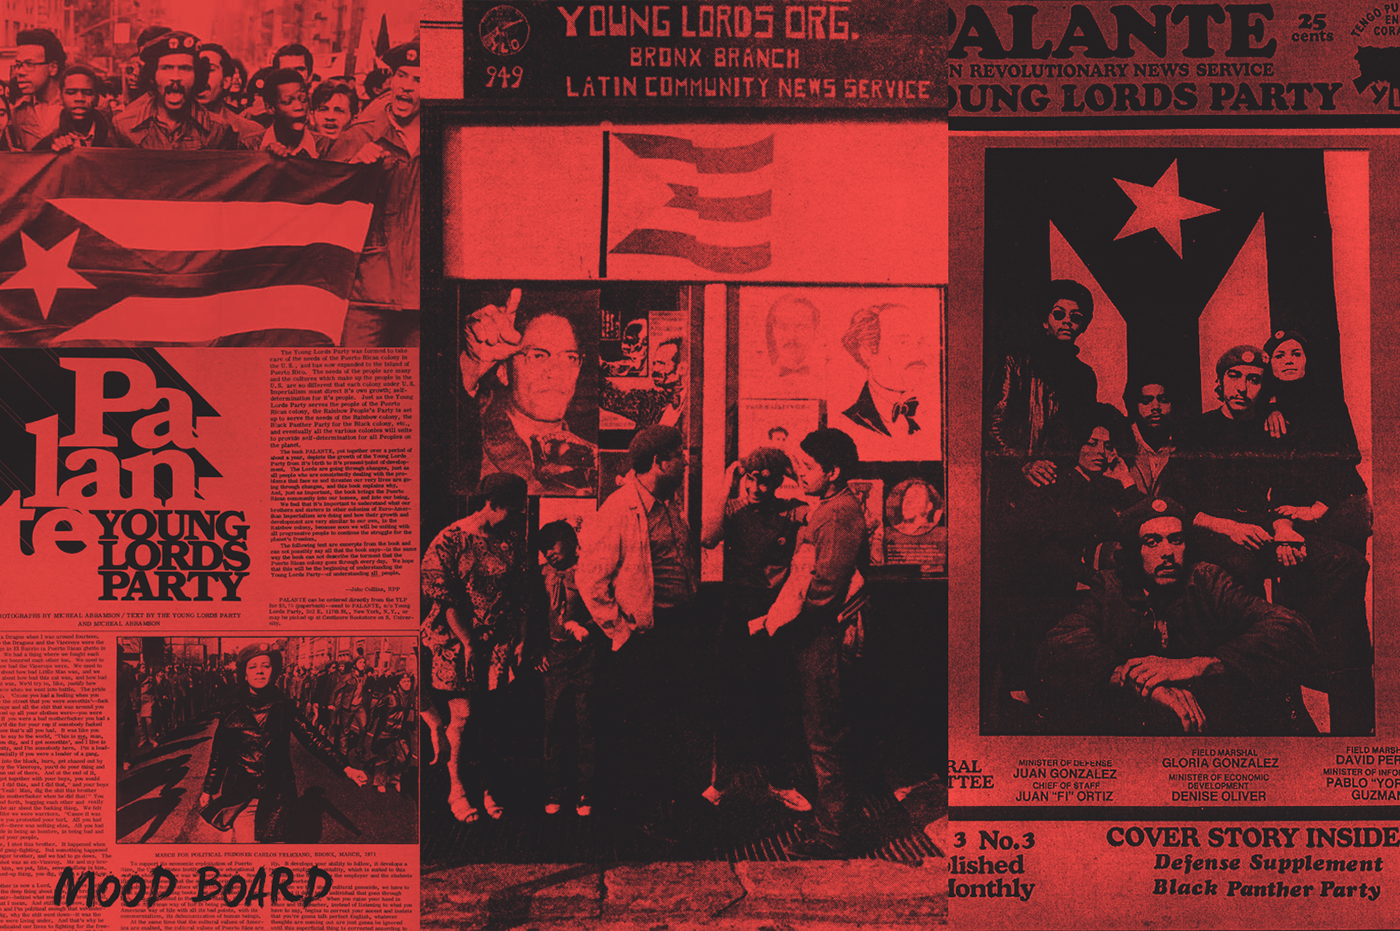 puerto rico puertorican college seminar poster University Stony Brook SUNY New York young lords history